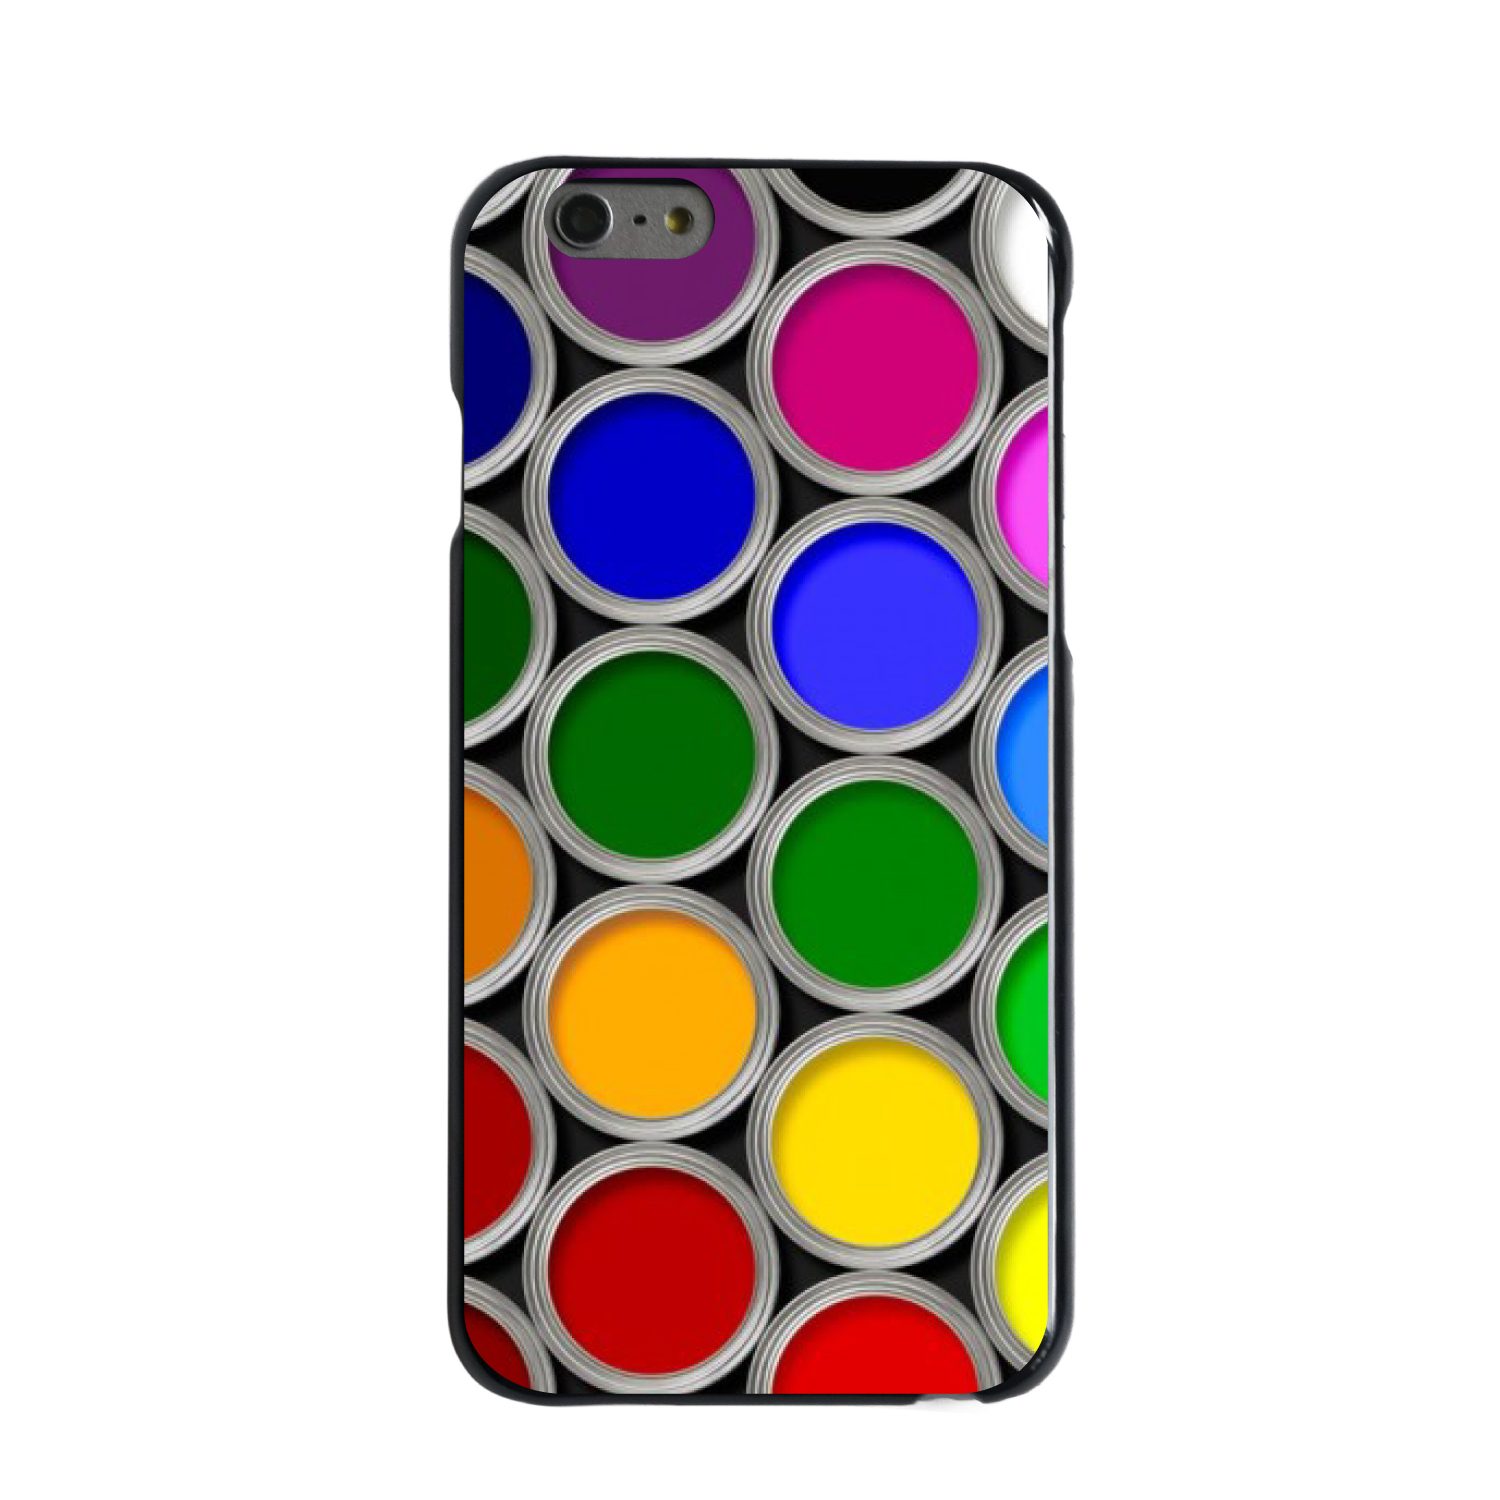 "CUSTOM Black Hard Plastic Snap-On Case for Apple iPhone 6 PLUS / 6S PLUS (5.5"" Screen) - Rainbow Paint Cans"